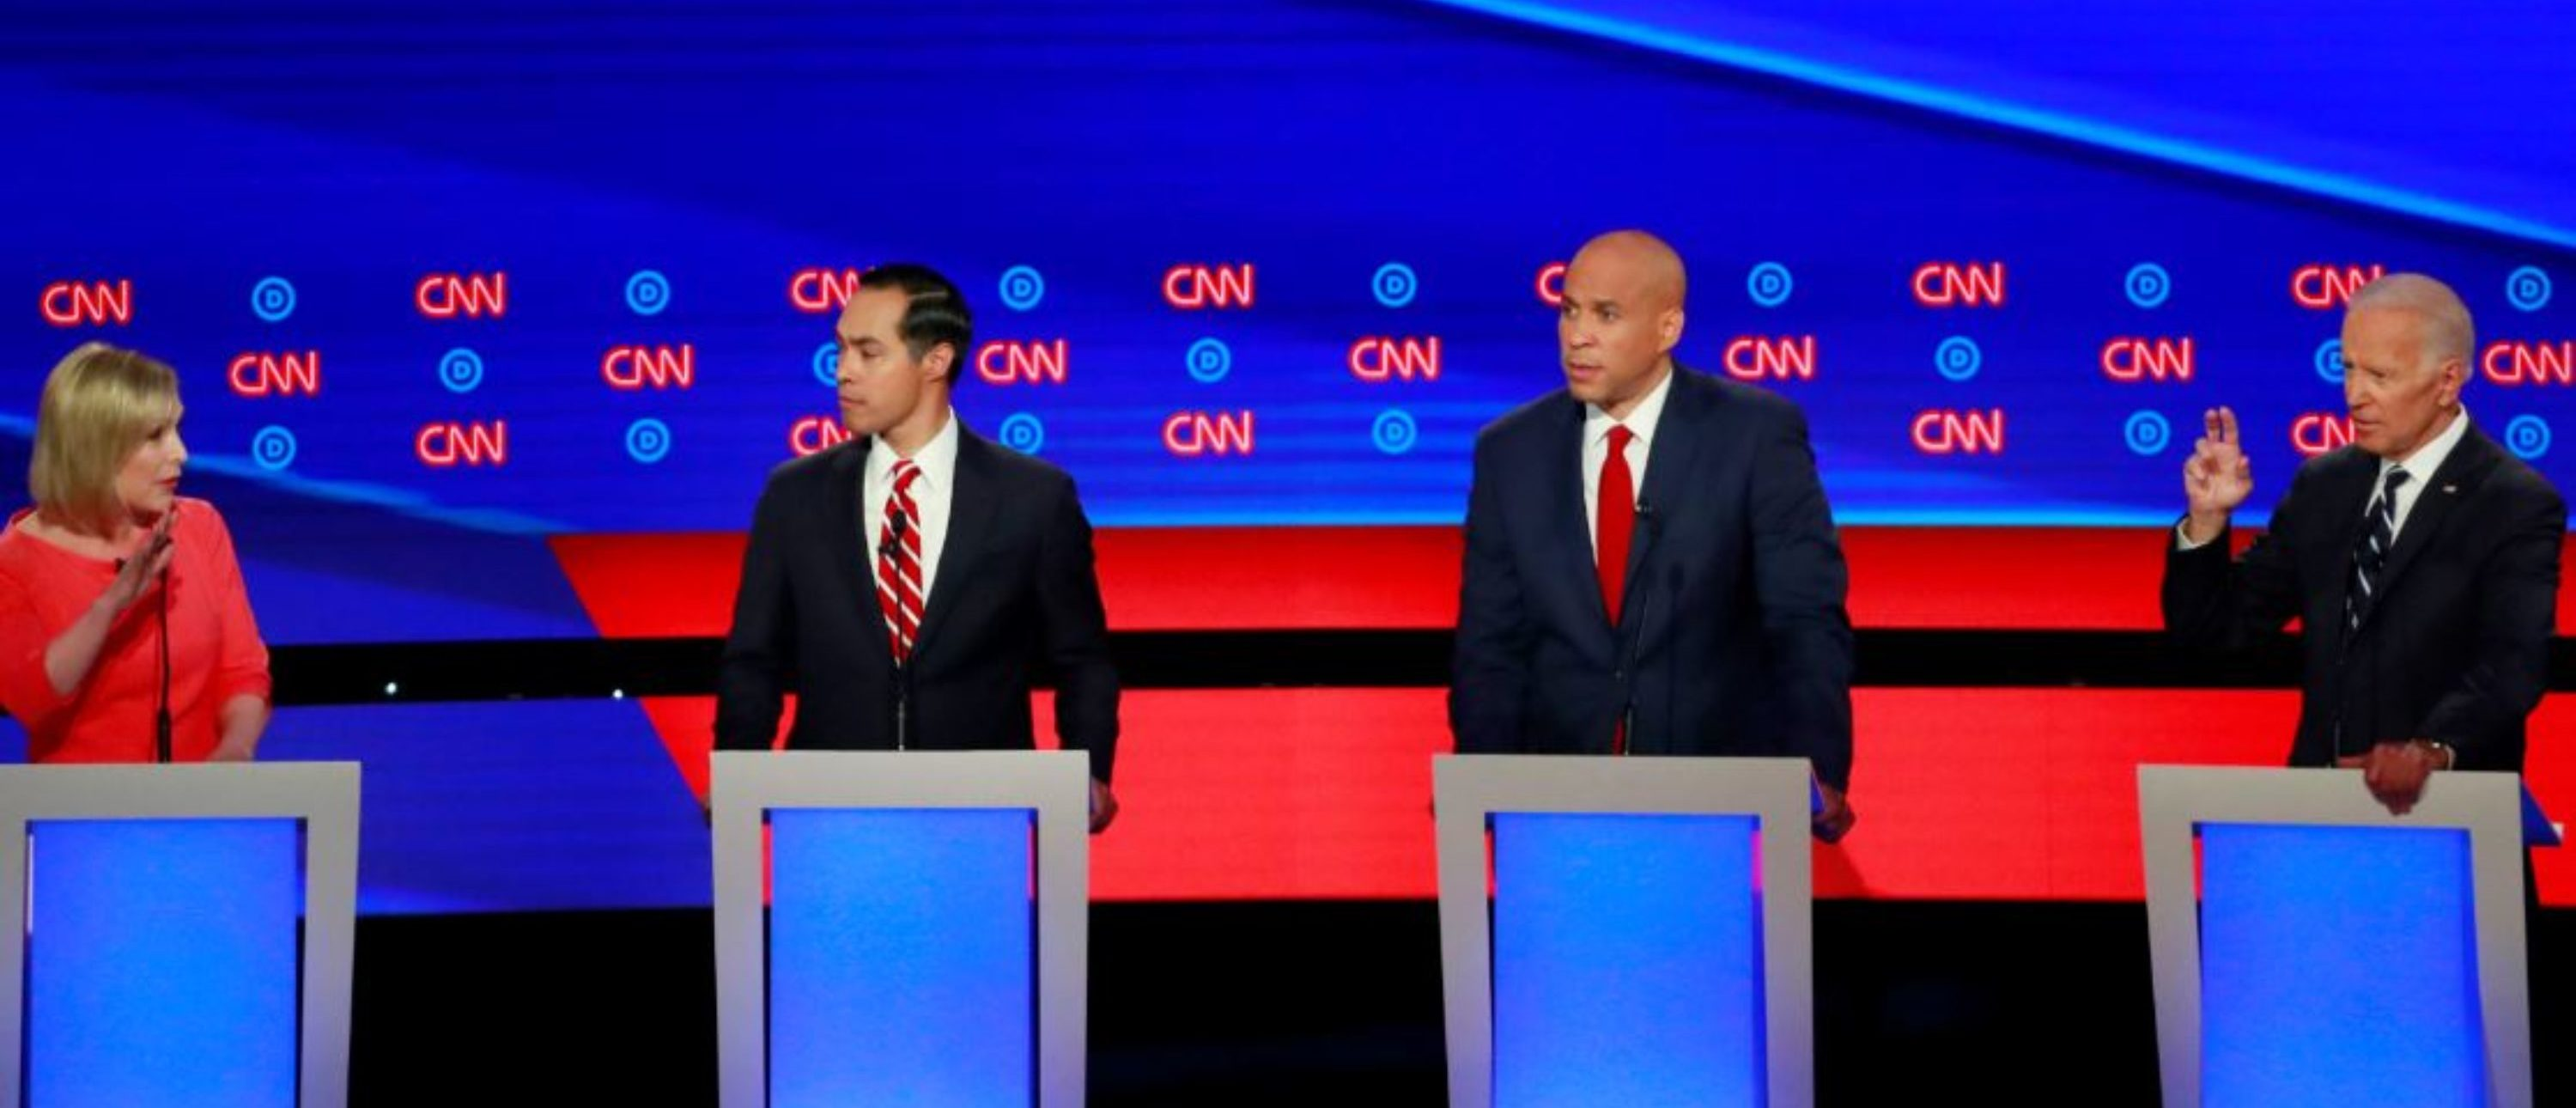 CNN Invites 9 Democratic Candidates To Climate Town Hall. Here's The Line-Up